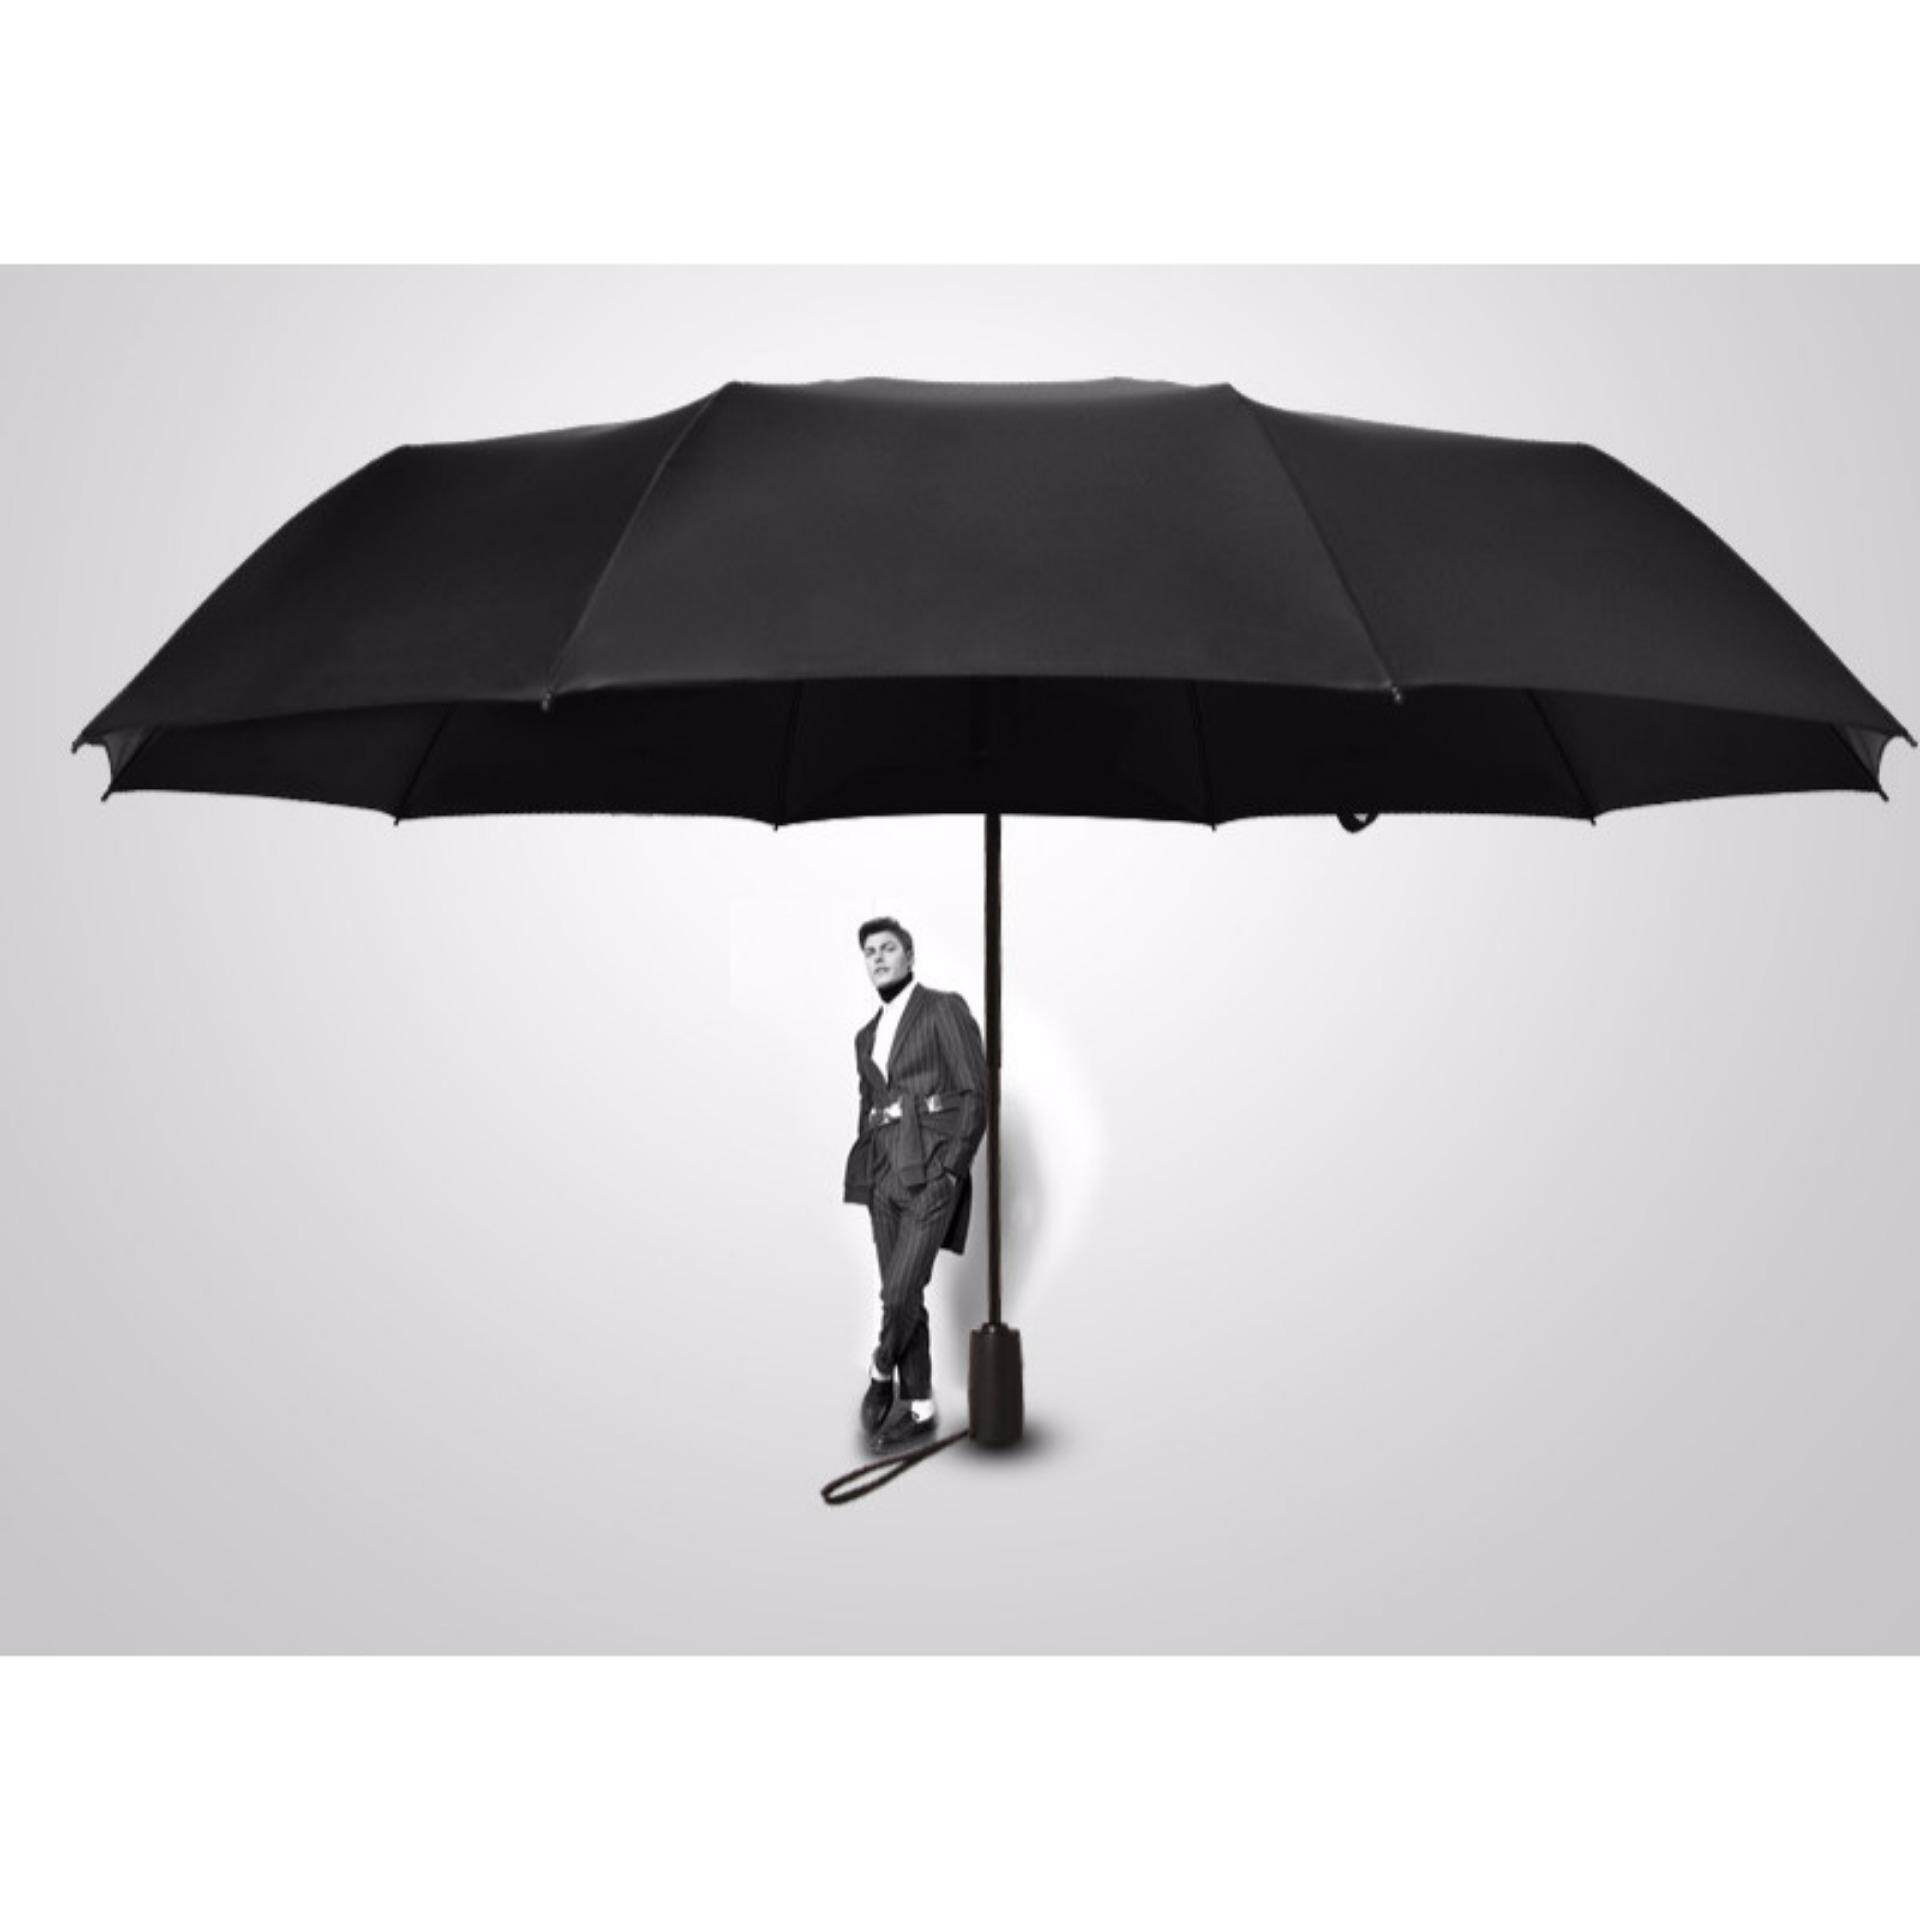 Super Large Umbrella enough to sheltered 3 persons * UV light Protection* Automatic Open and Close * - intl